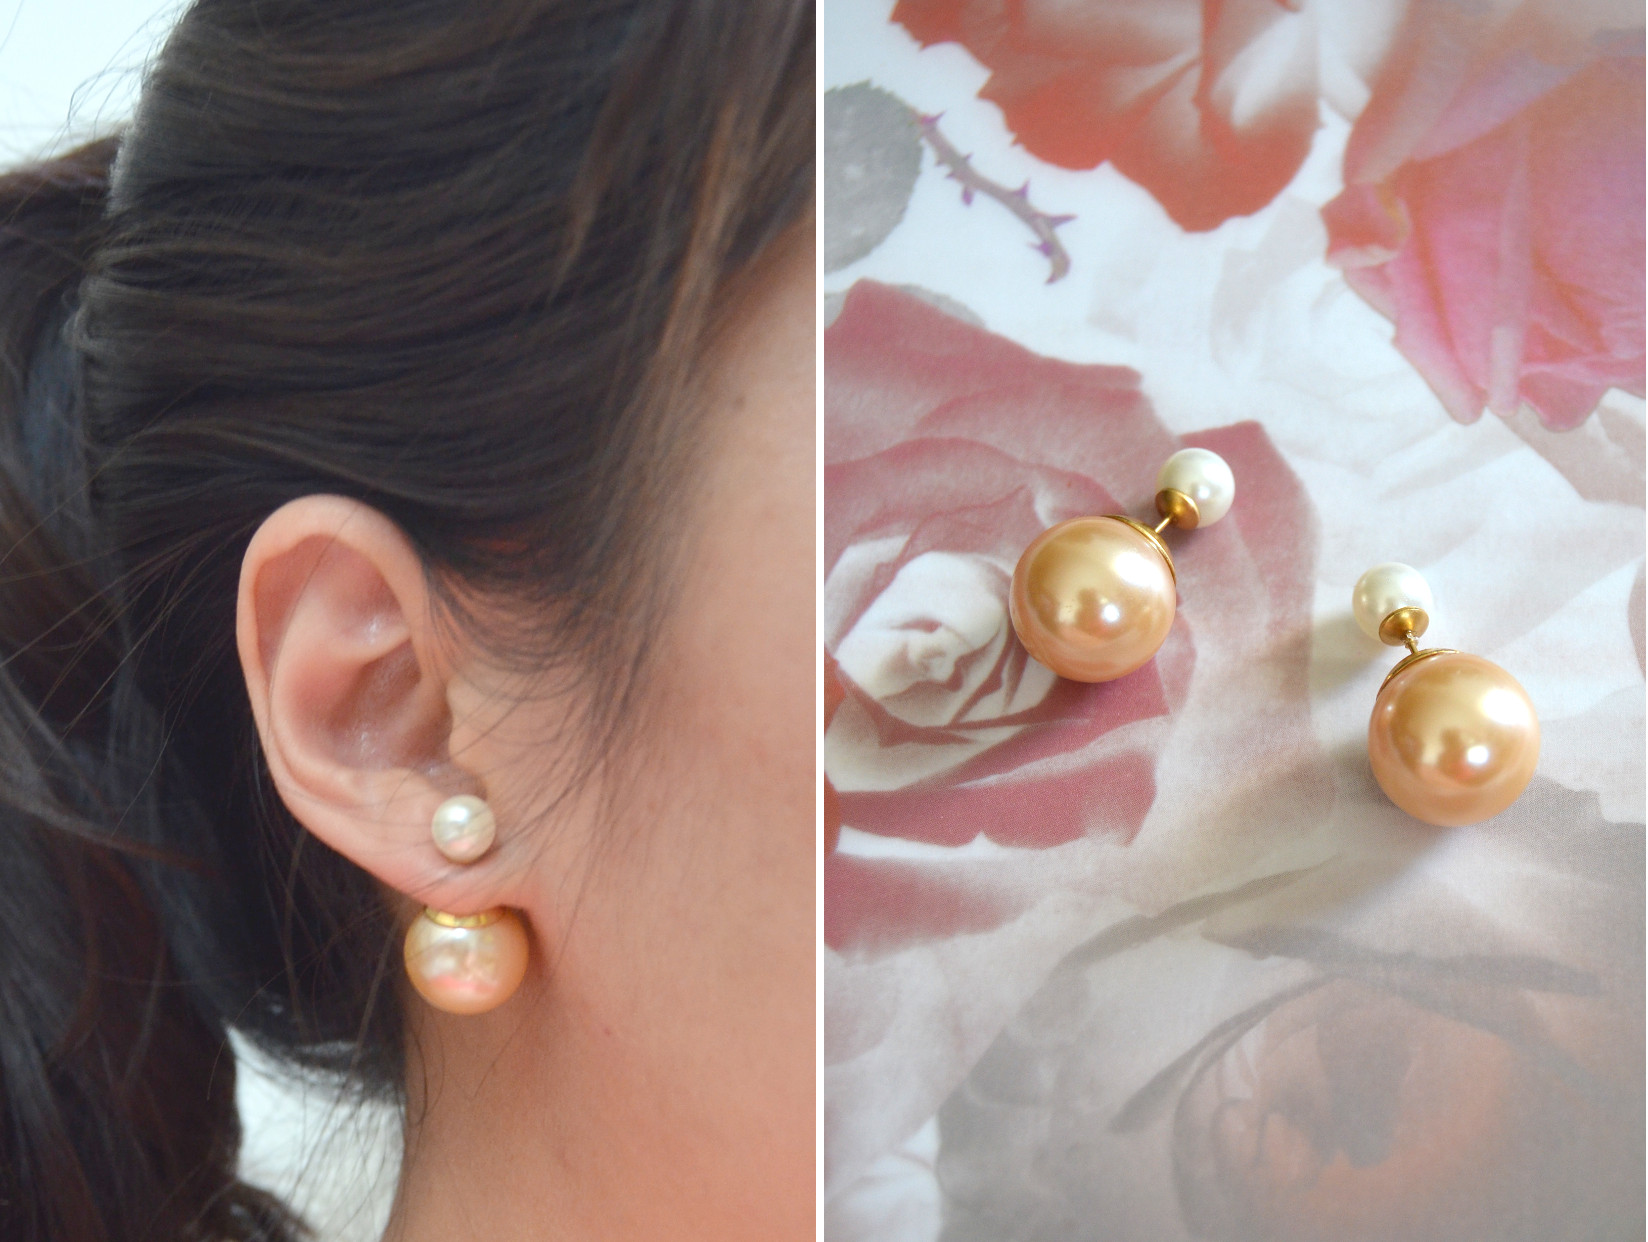 basement wall giant stud earrings extra large model studs on pearl earring